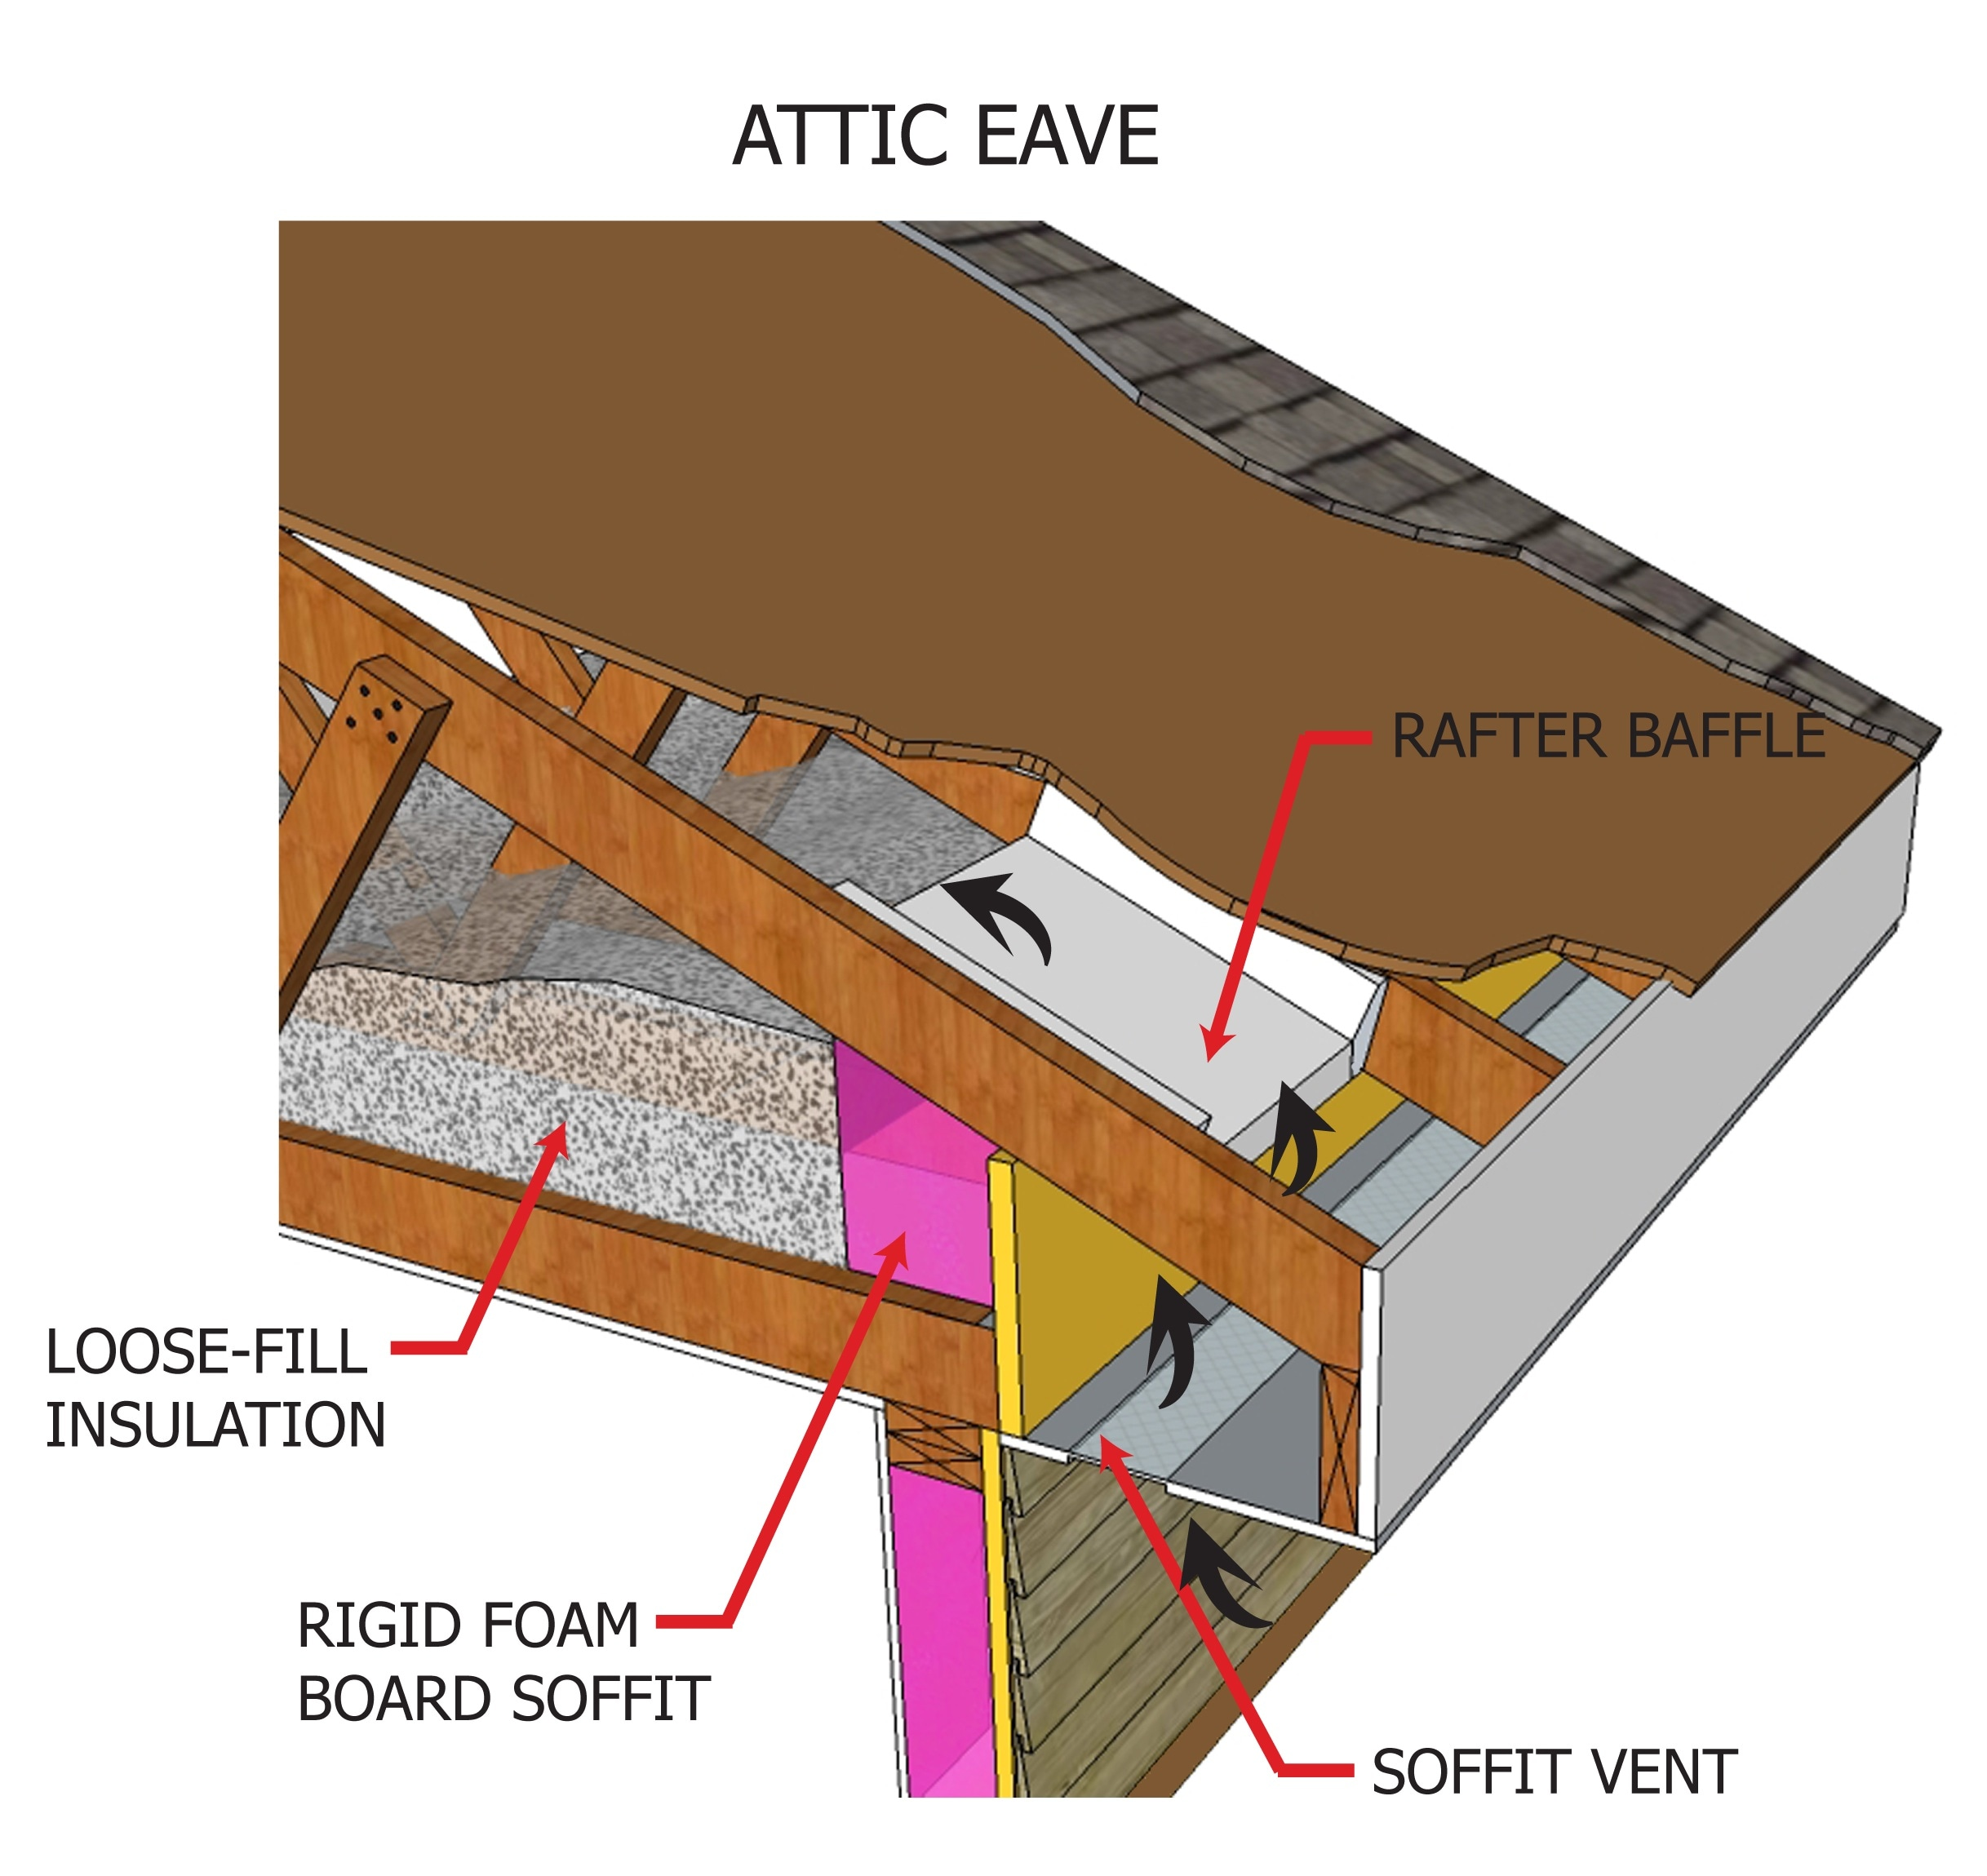 Attic eave loose-fill insulation.